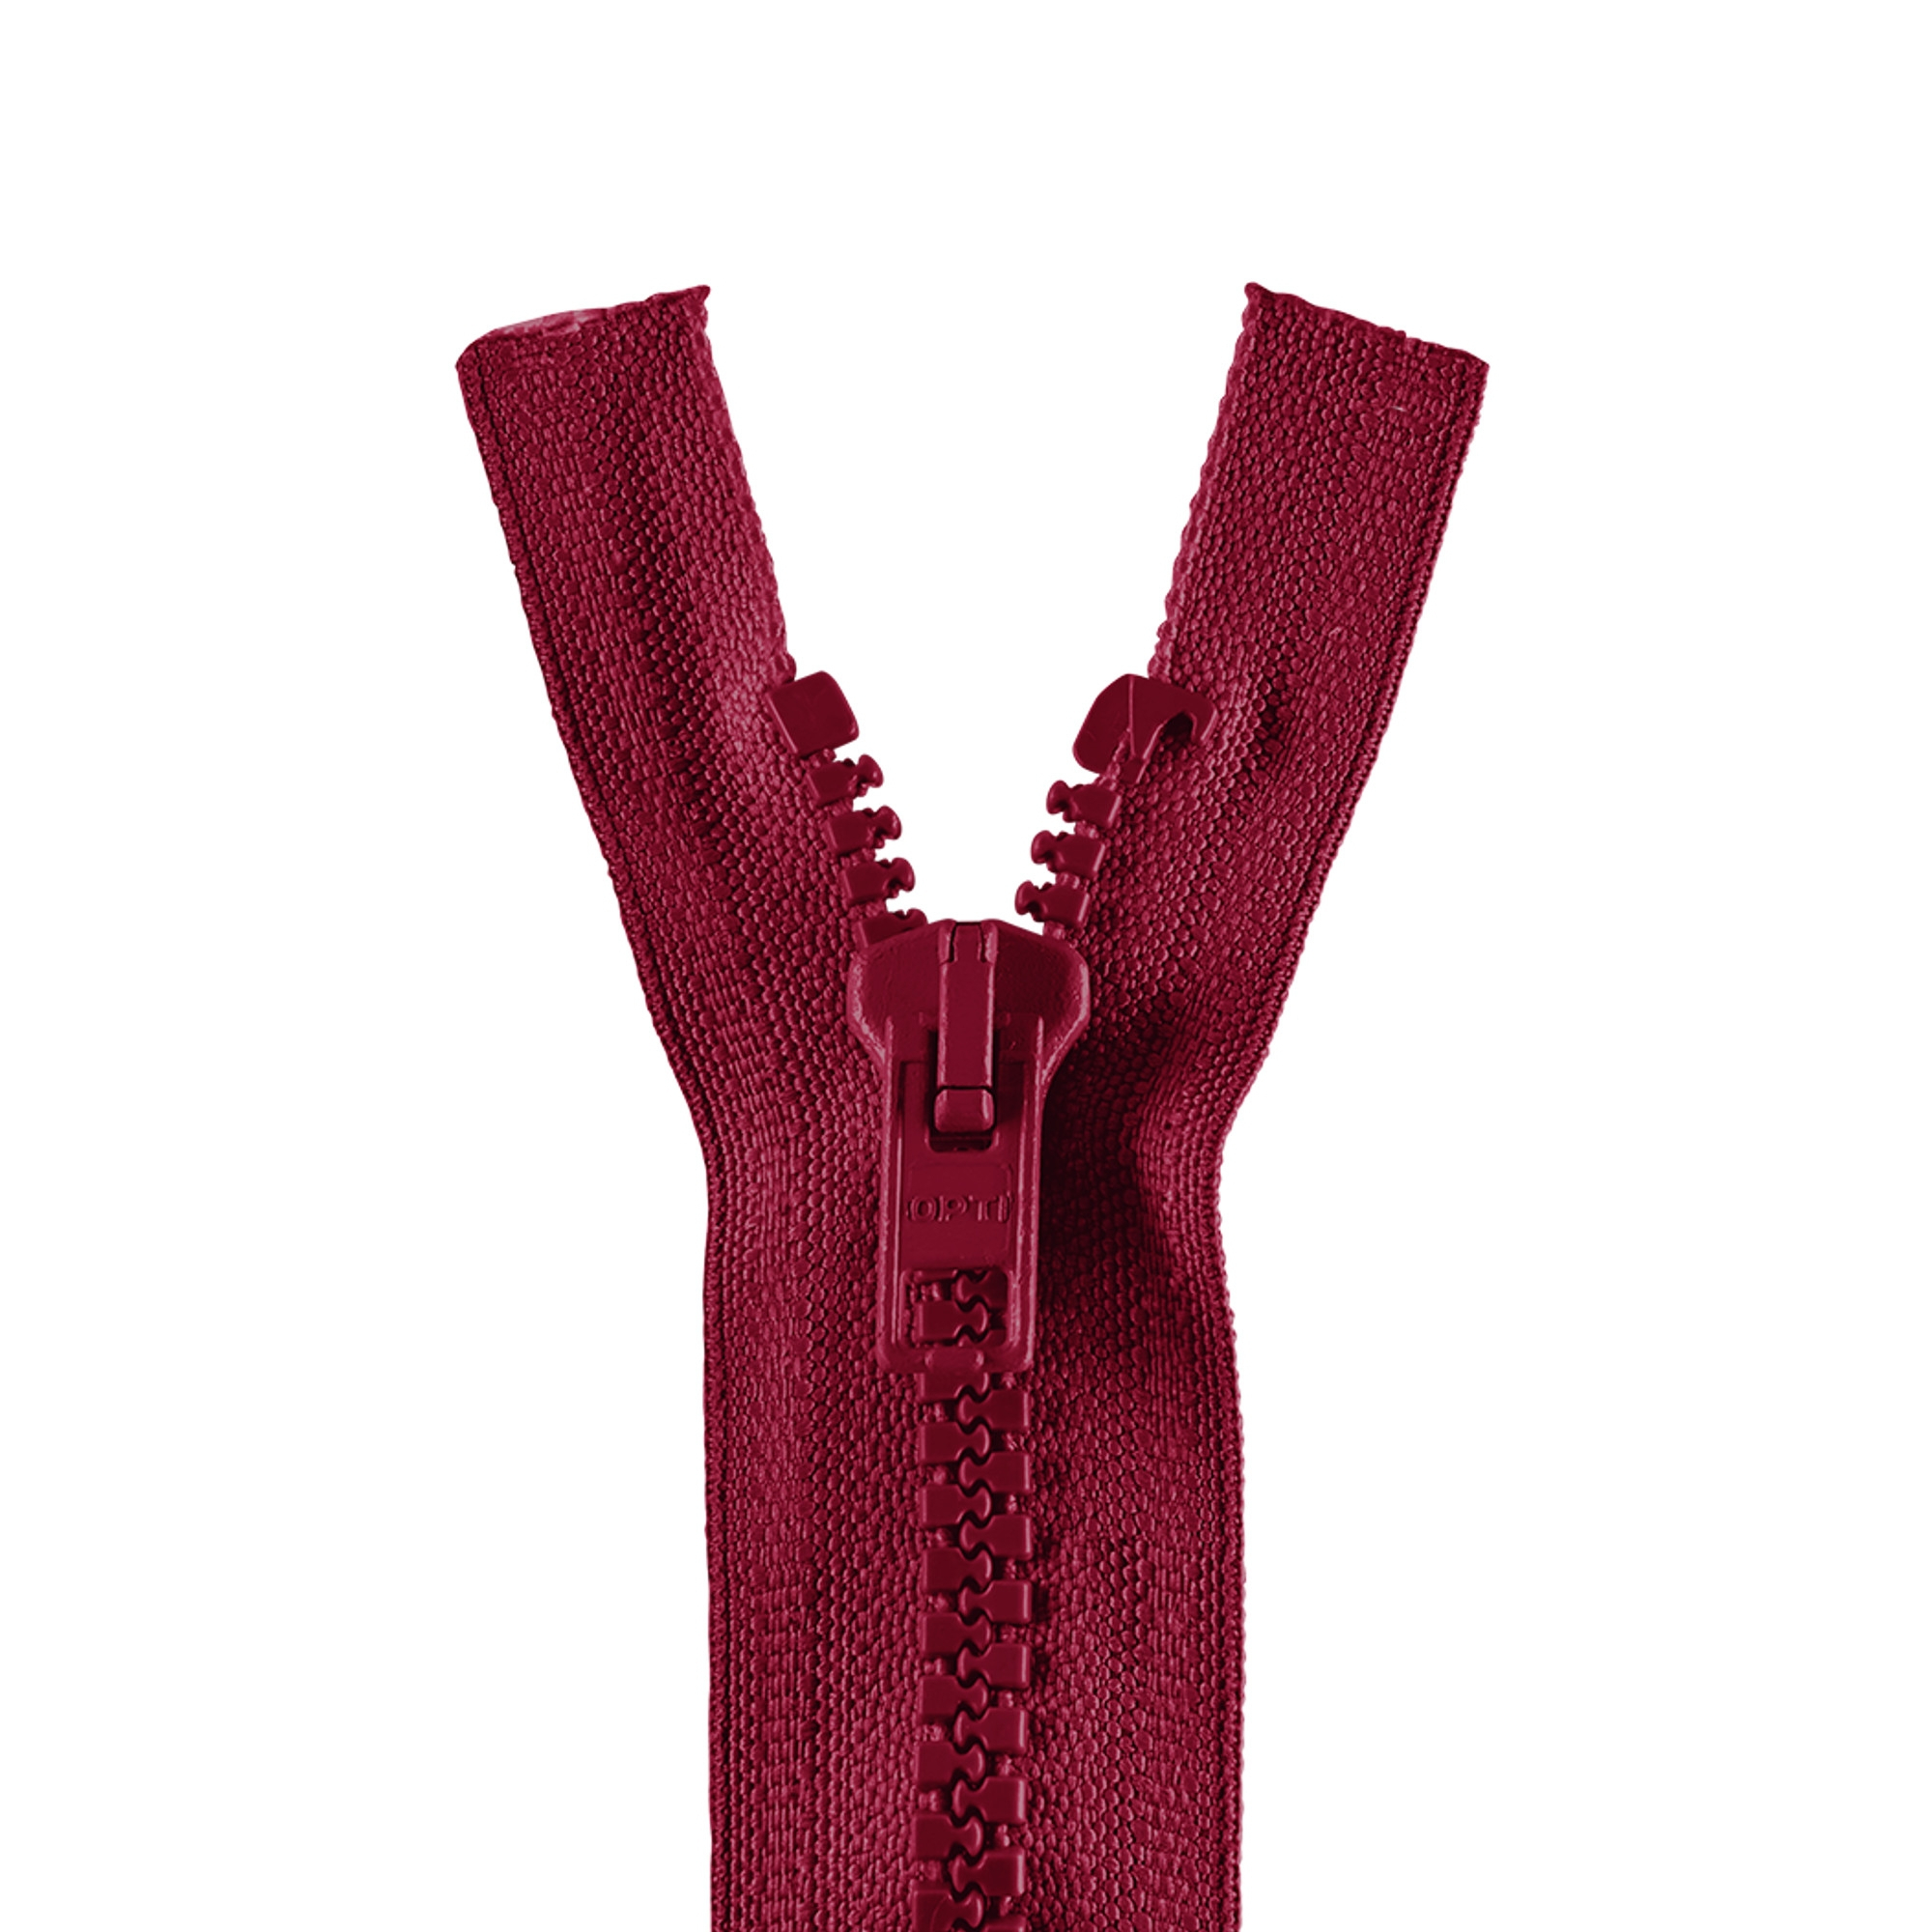 Zipper 3490, bordeaux | 3490-0750 |